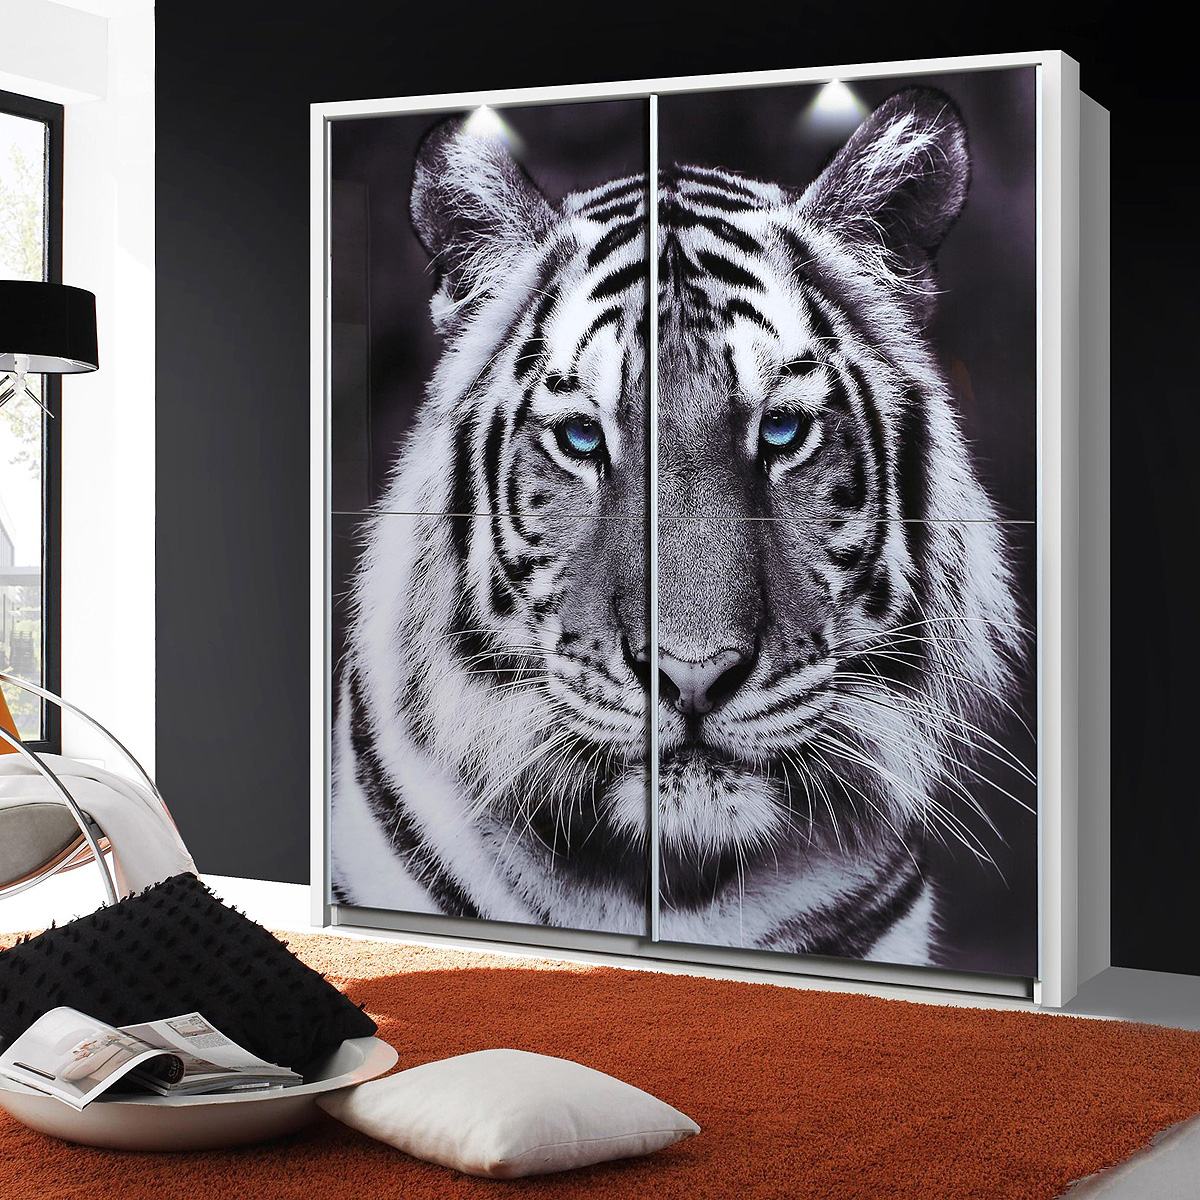 schwebet renschrank yanis kleiderschrank schrank wei glas mit tigermotiv 170 cm ebay. Black Bedroom Furniture Sets. Home Design Ideas